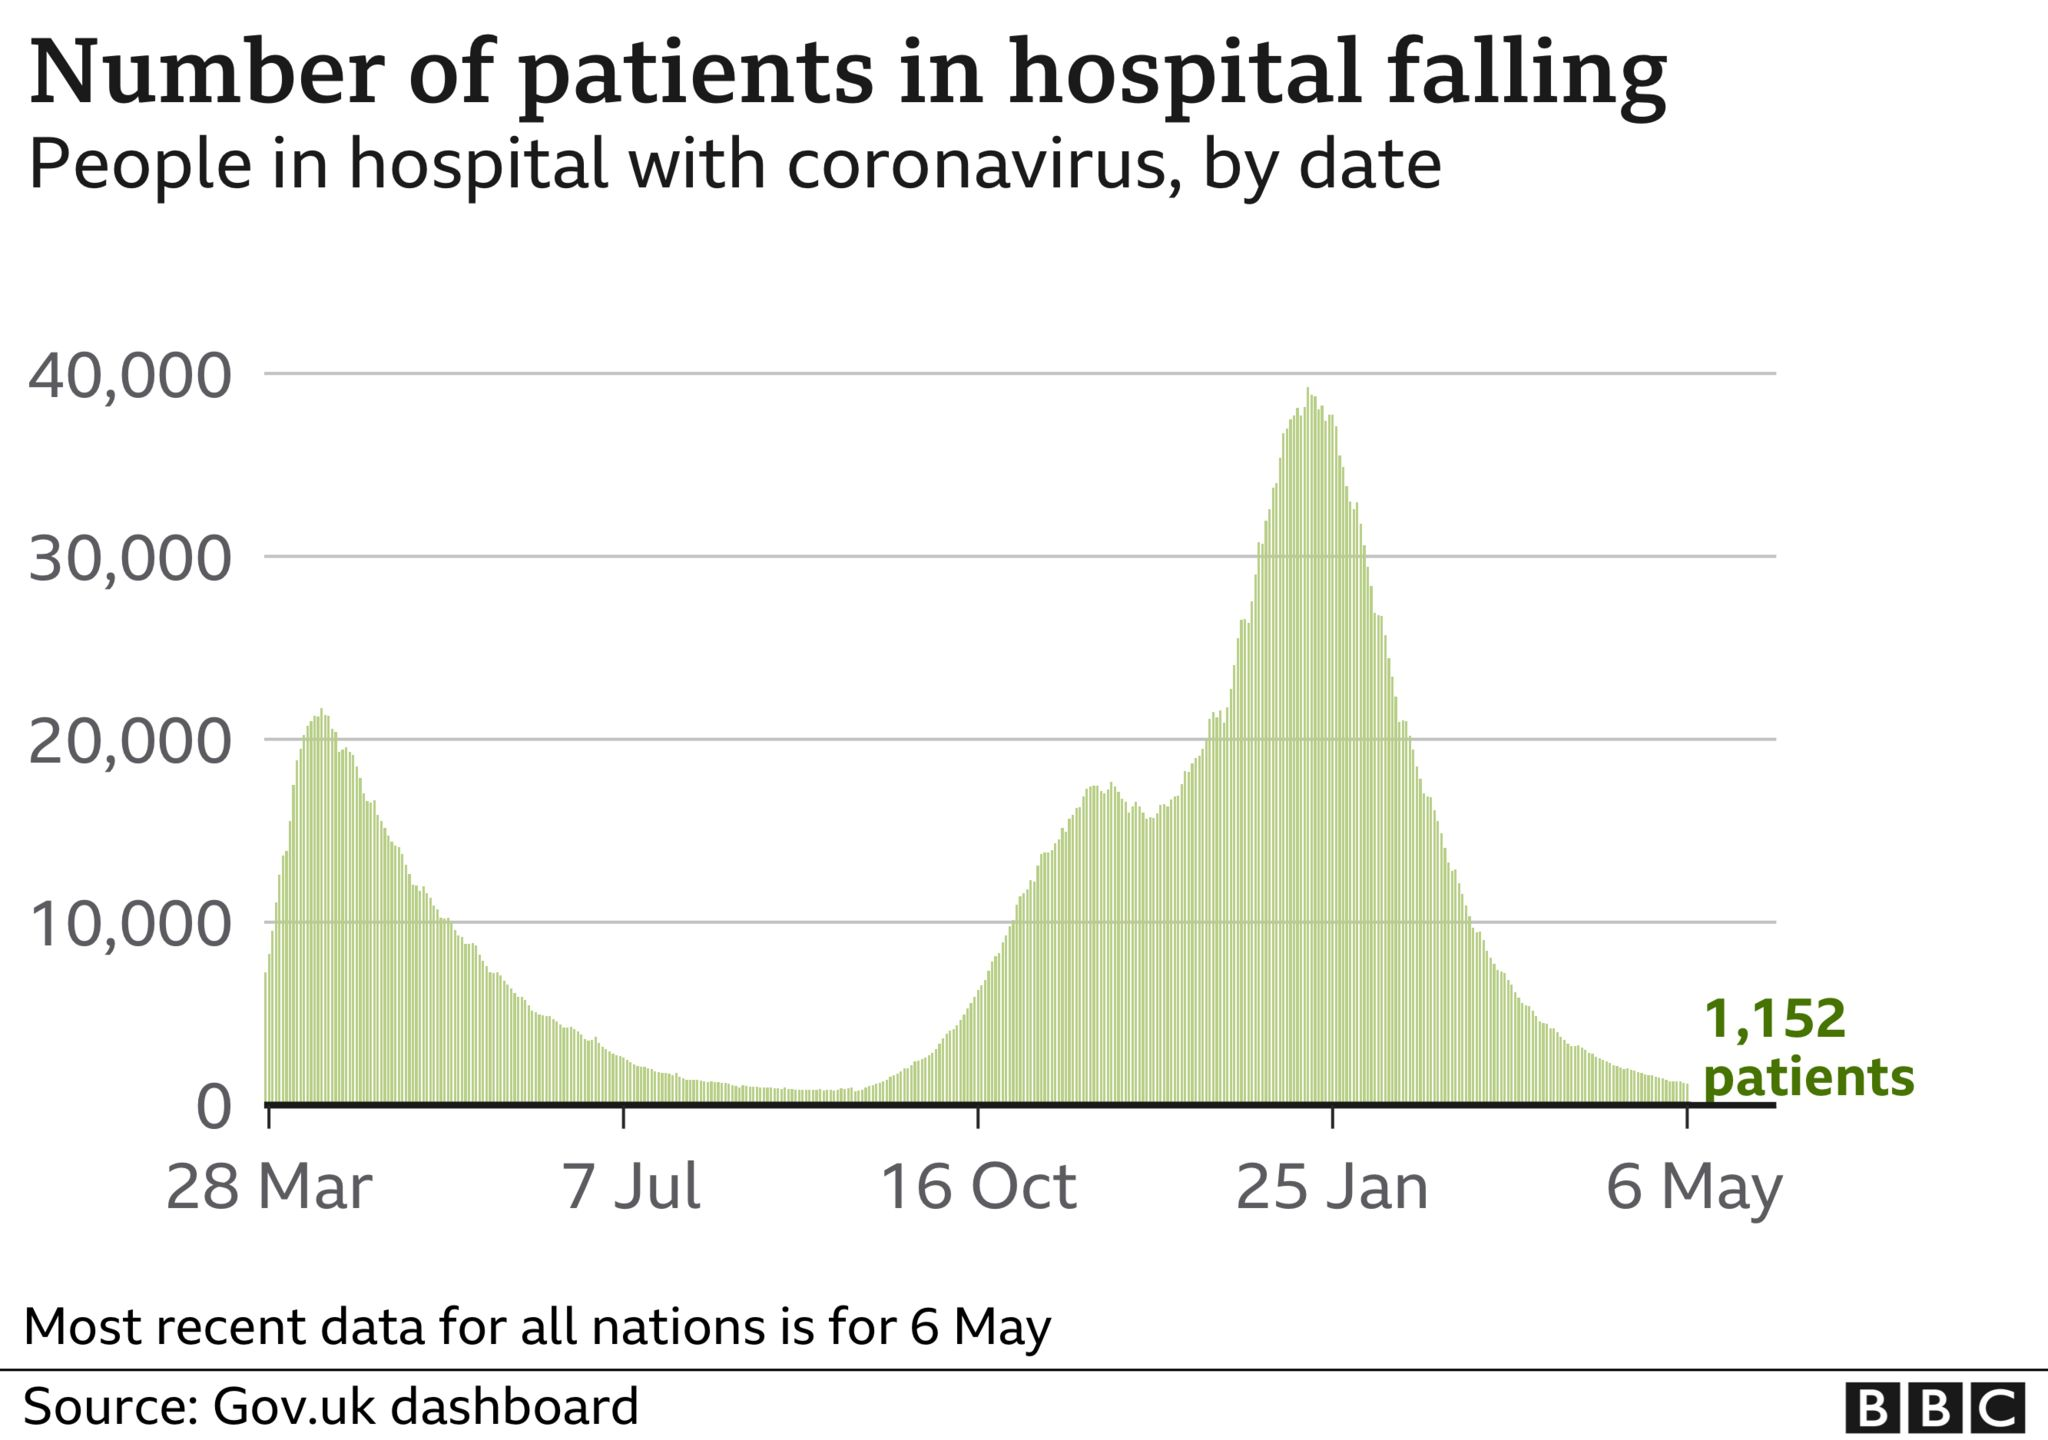 Charts showing number of patients in hospital in UK